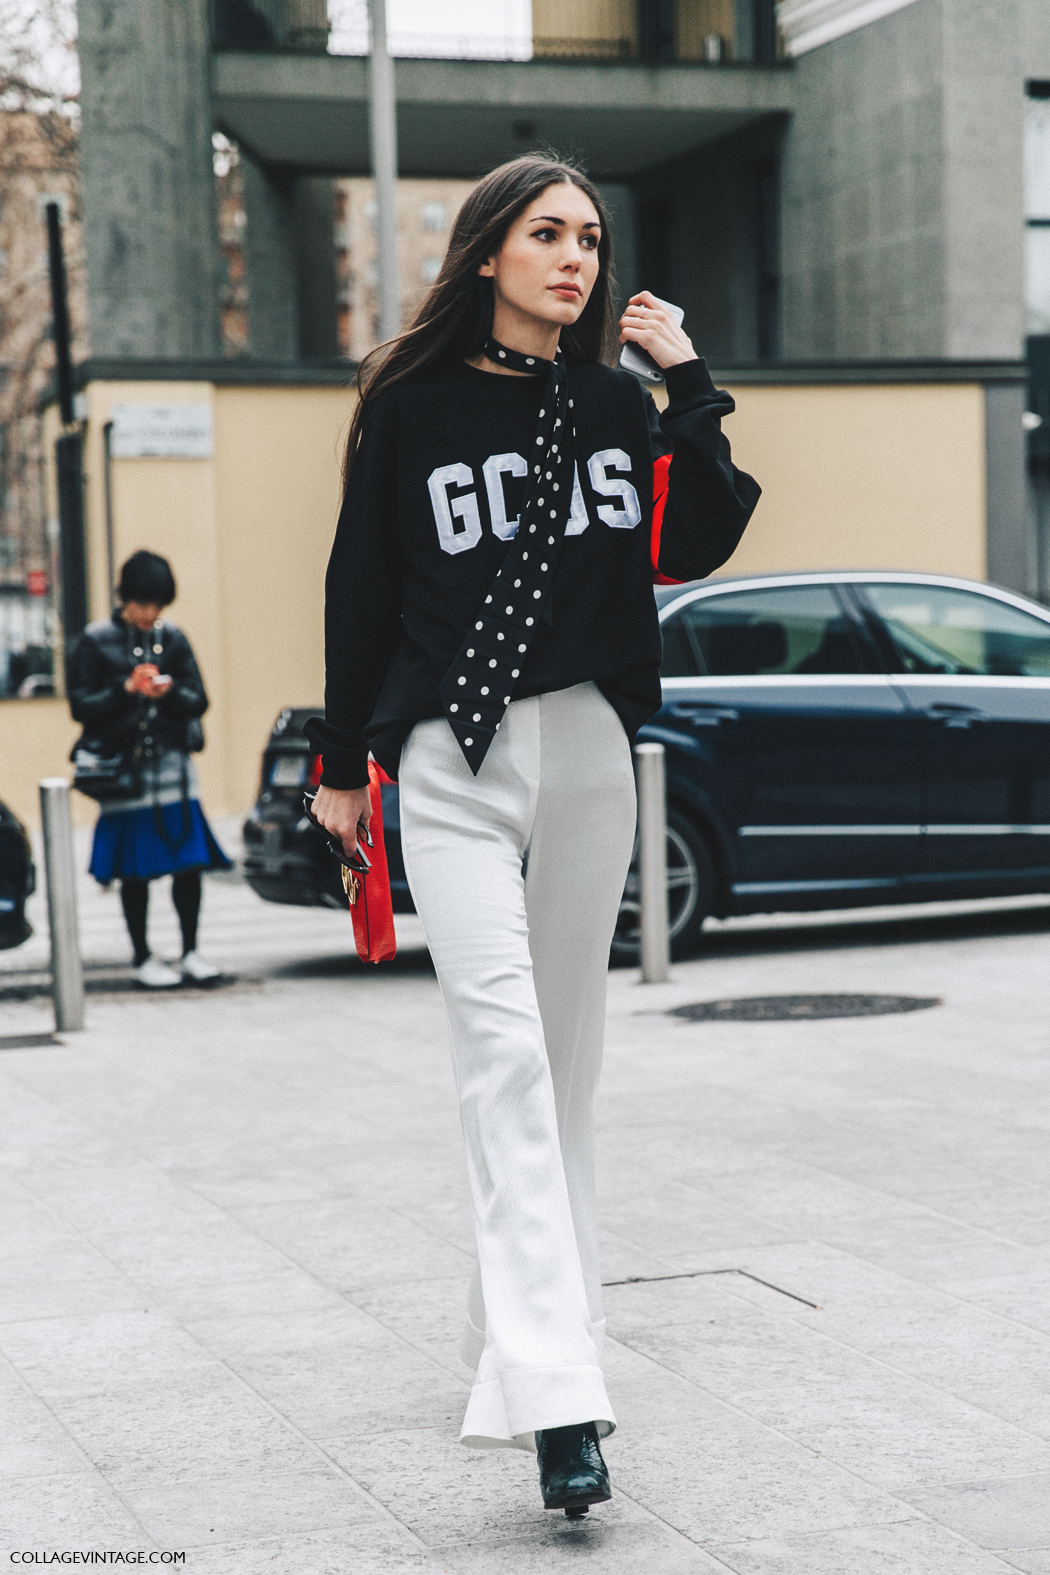 Milan_Fashion_Week_Fall_16-MFW-Street_Style-Collage_Vintage-Ellery_trousers-Diletta_Bonaiuti-5